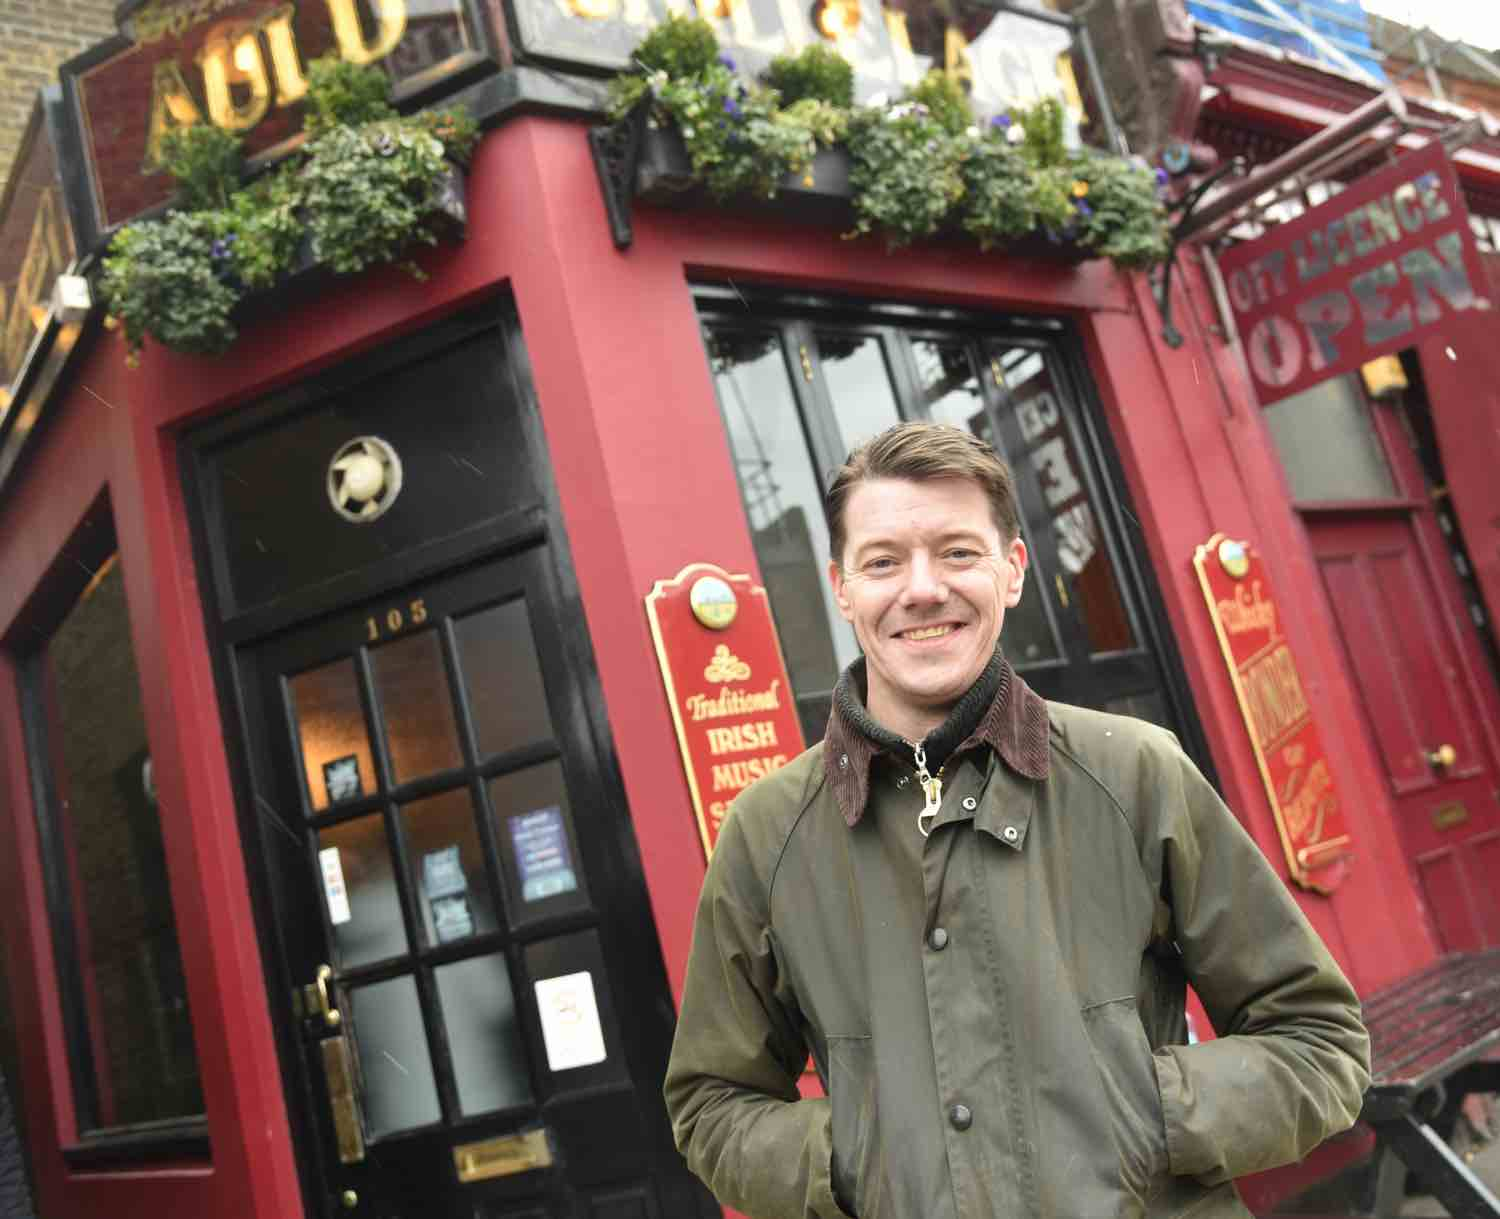 Pub Crawl to host Tom at Auld Shillelagh